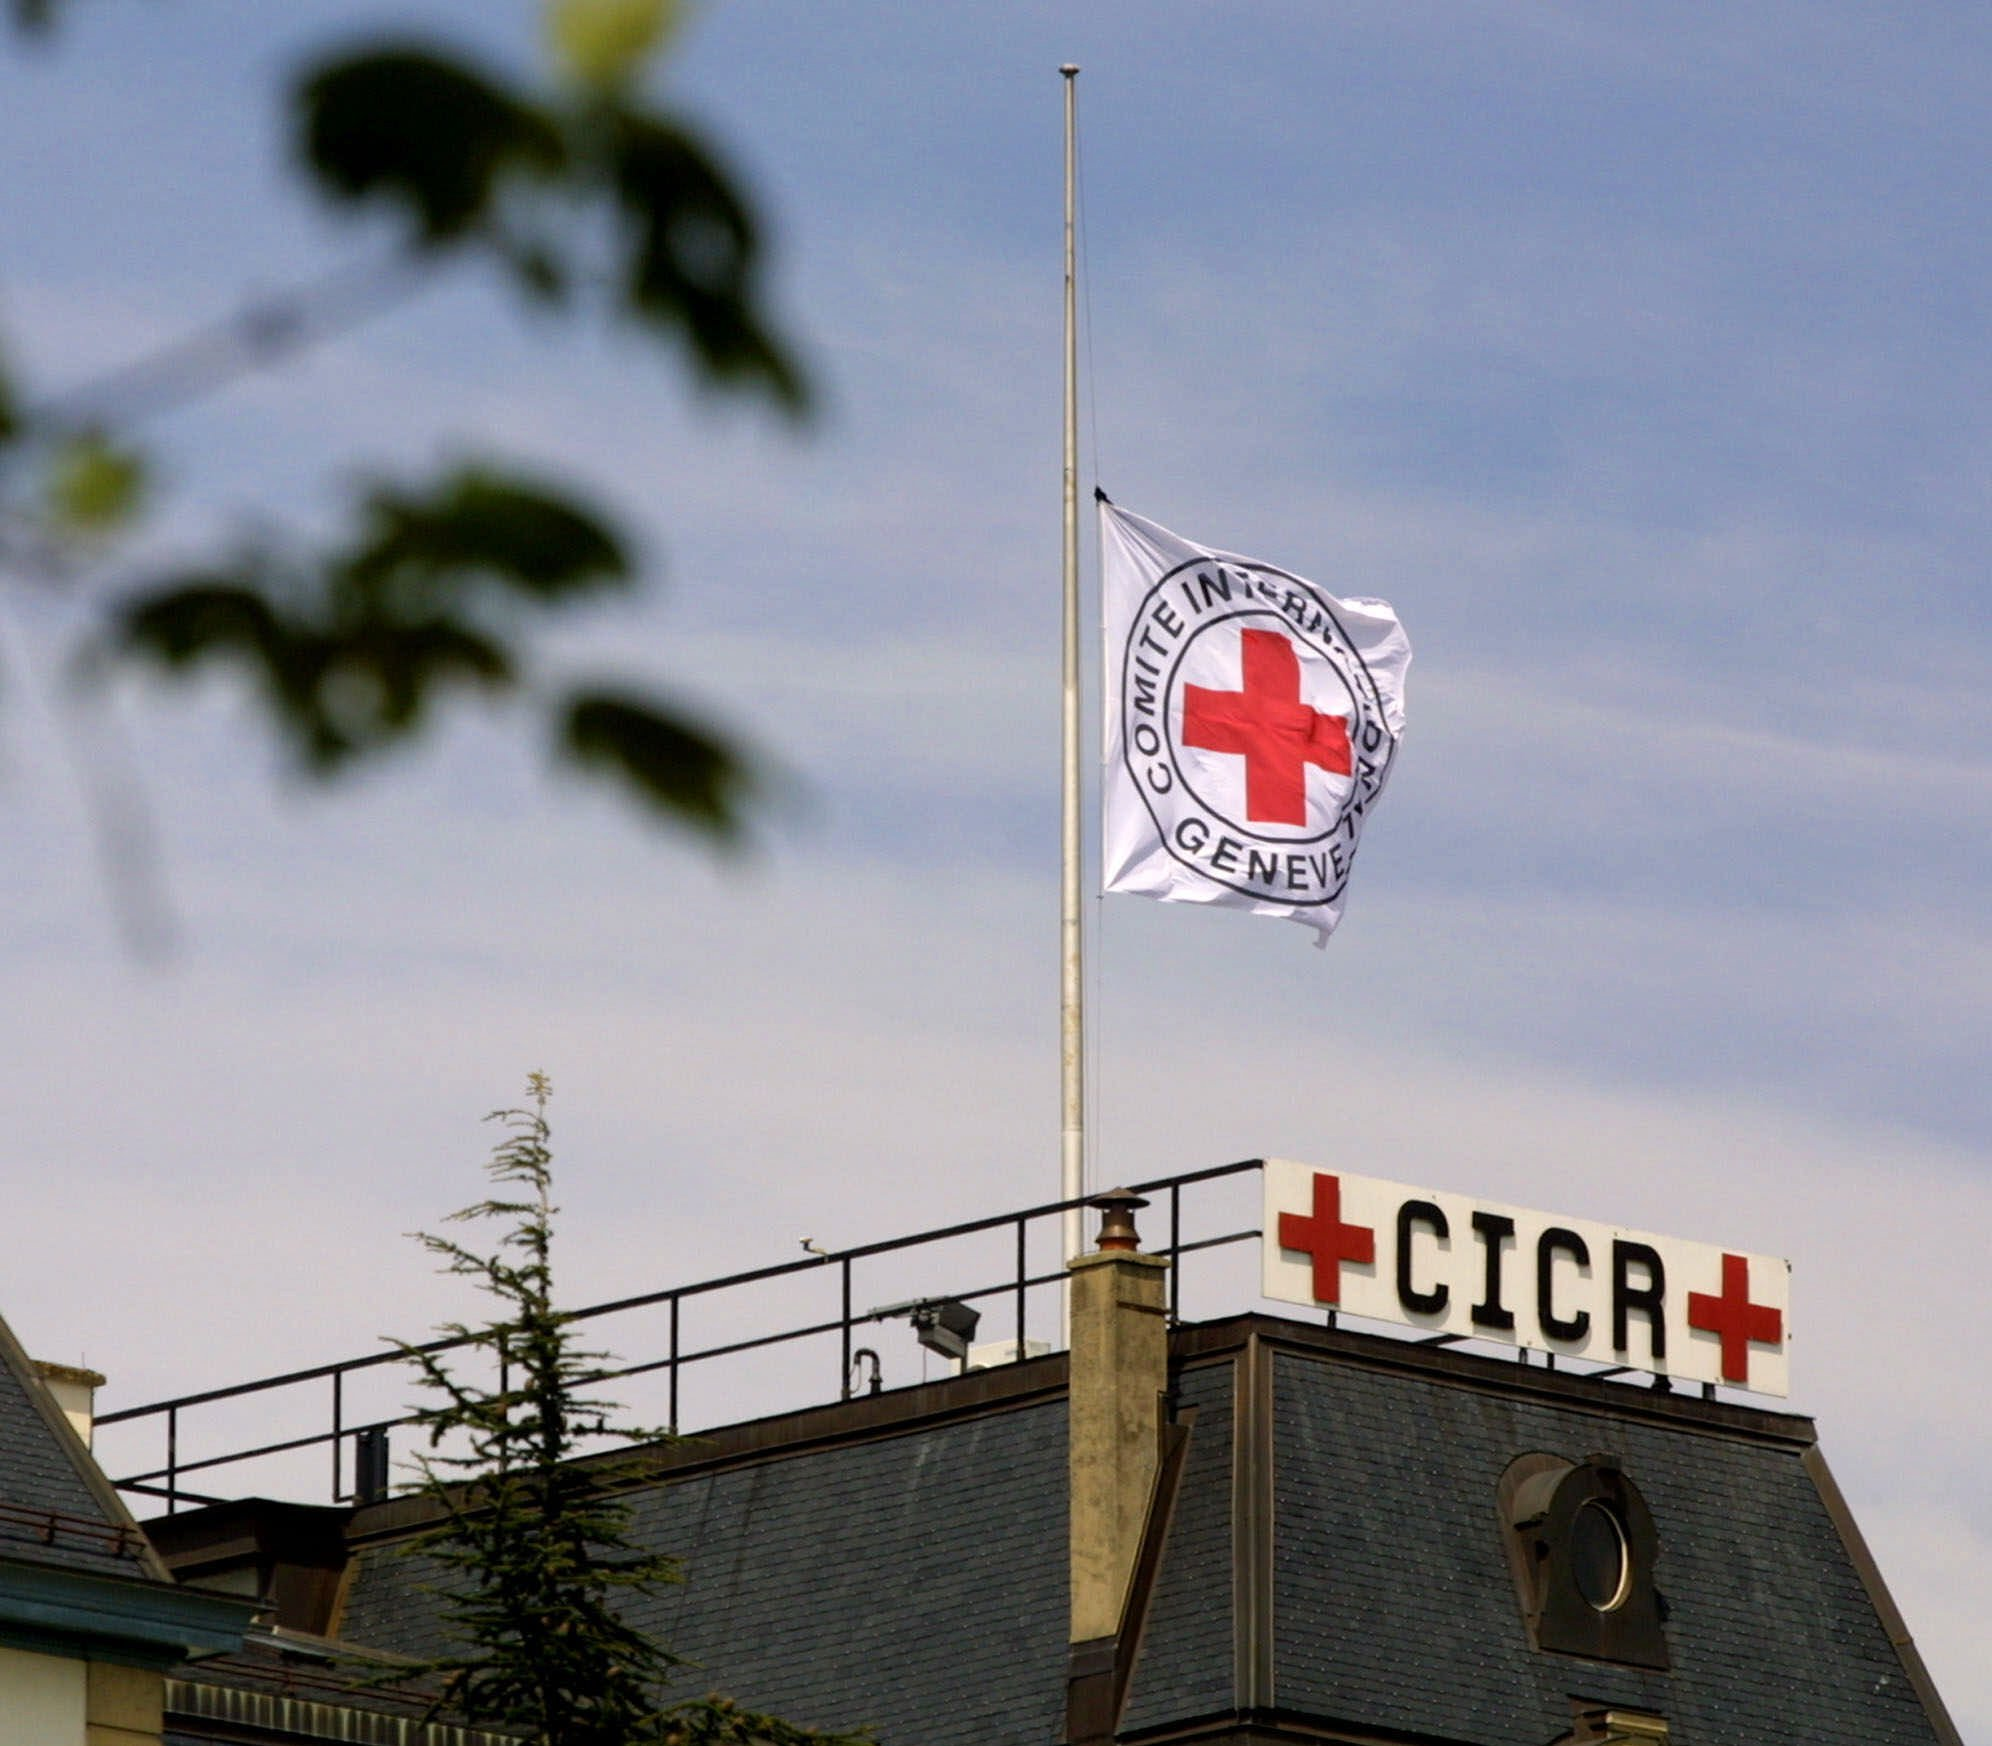 Red Cross says 23 staff left over sexual misconduct since 2015